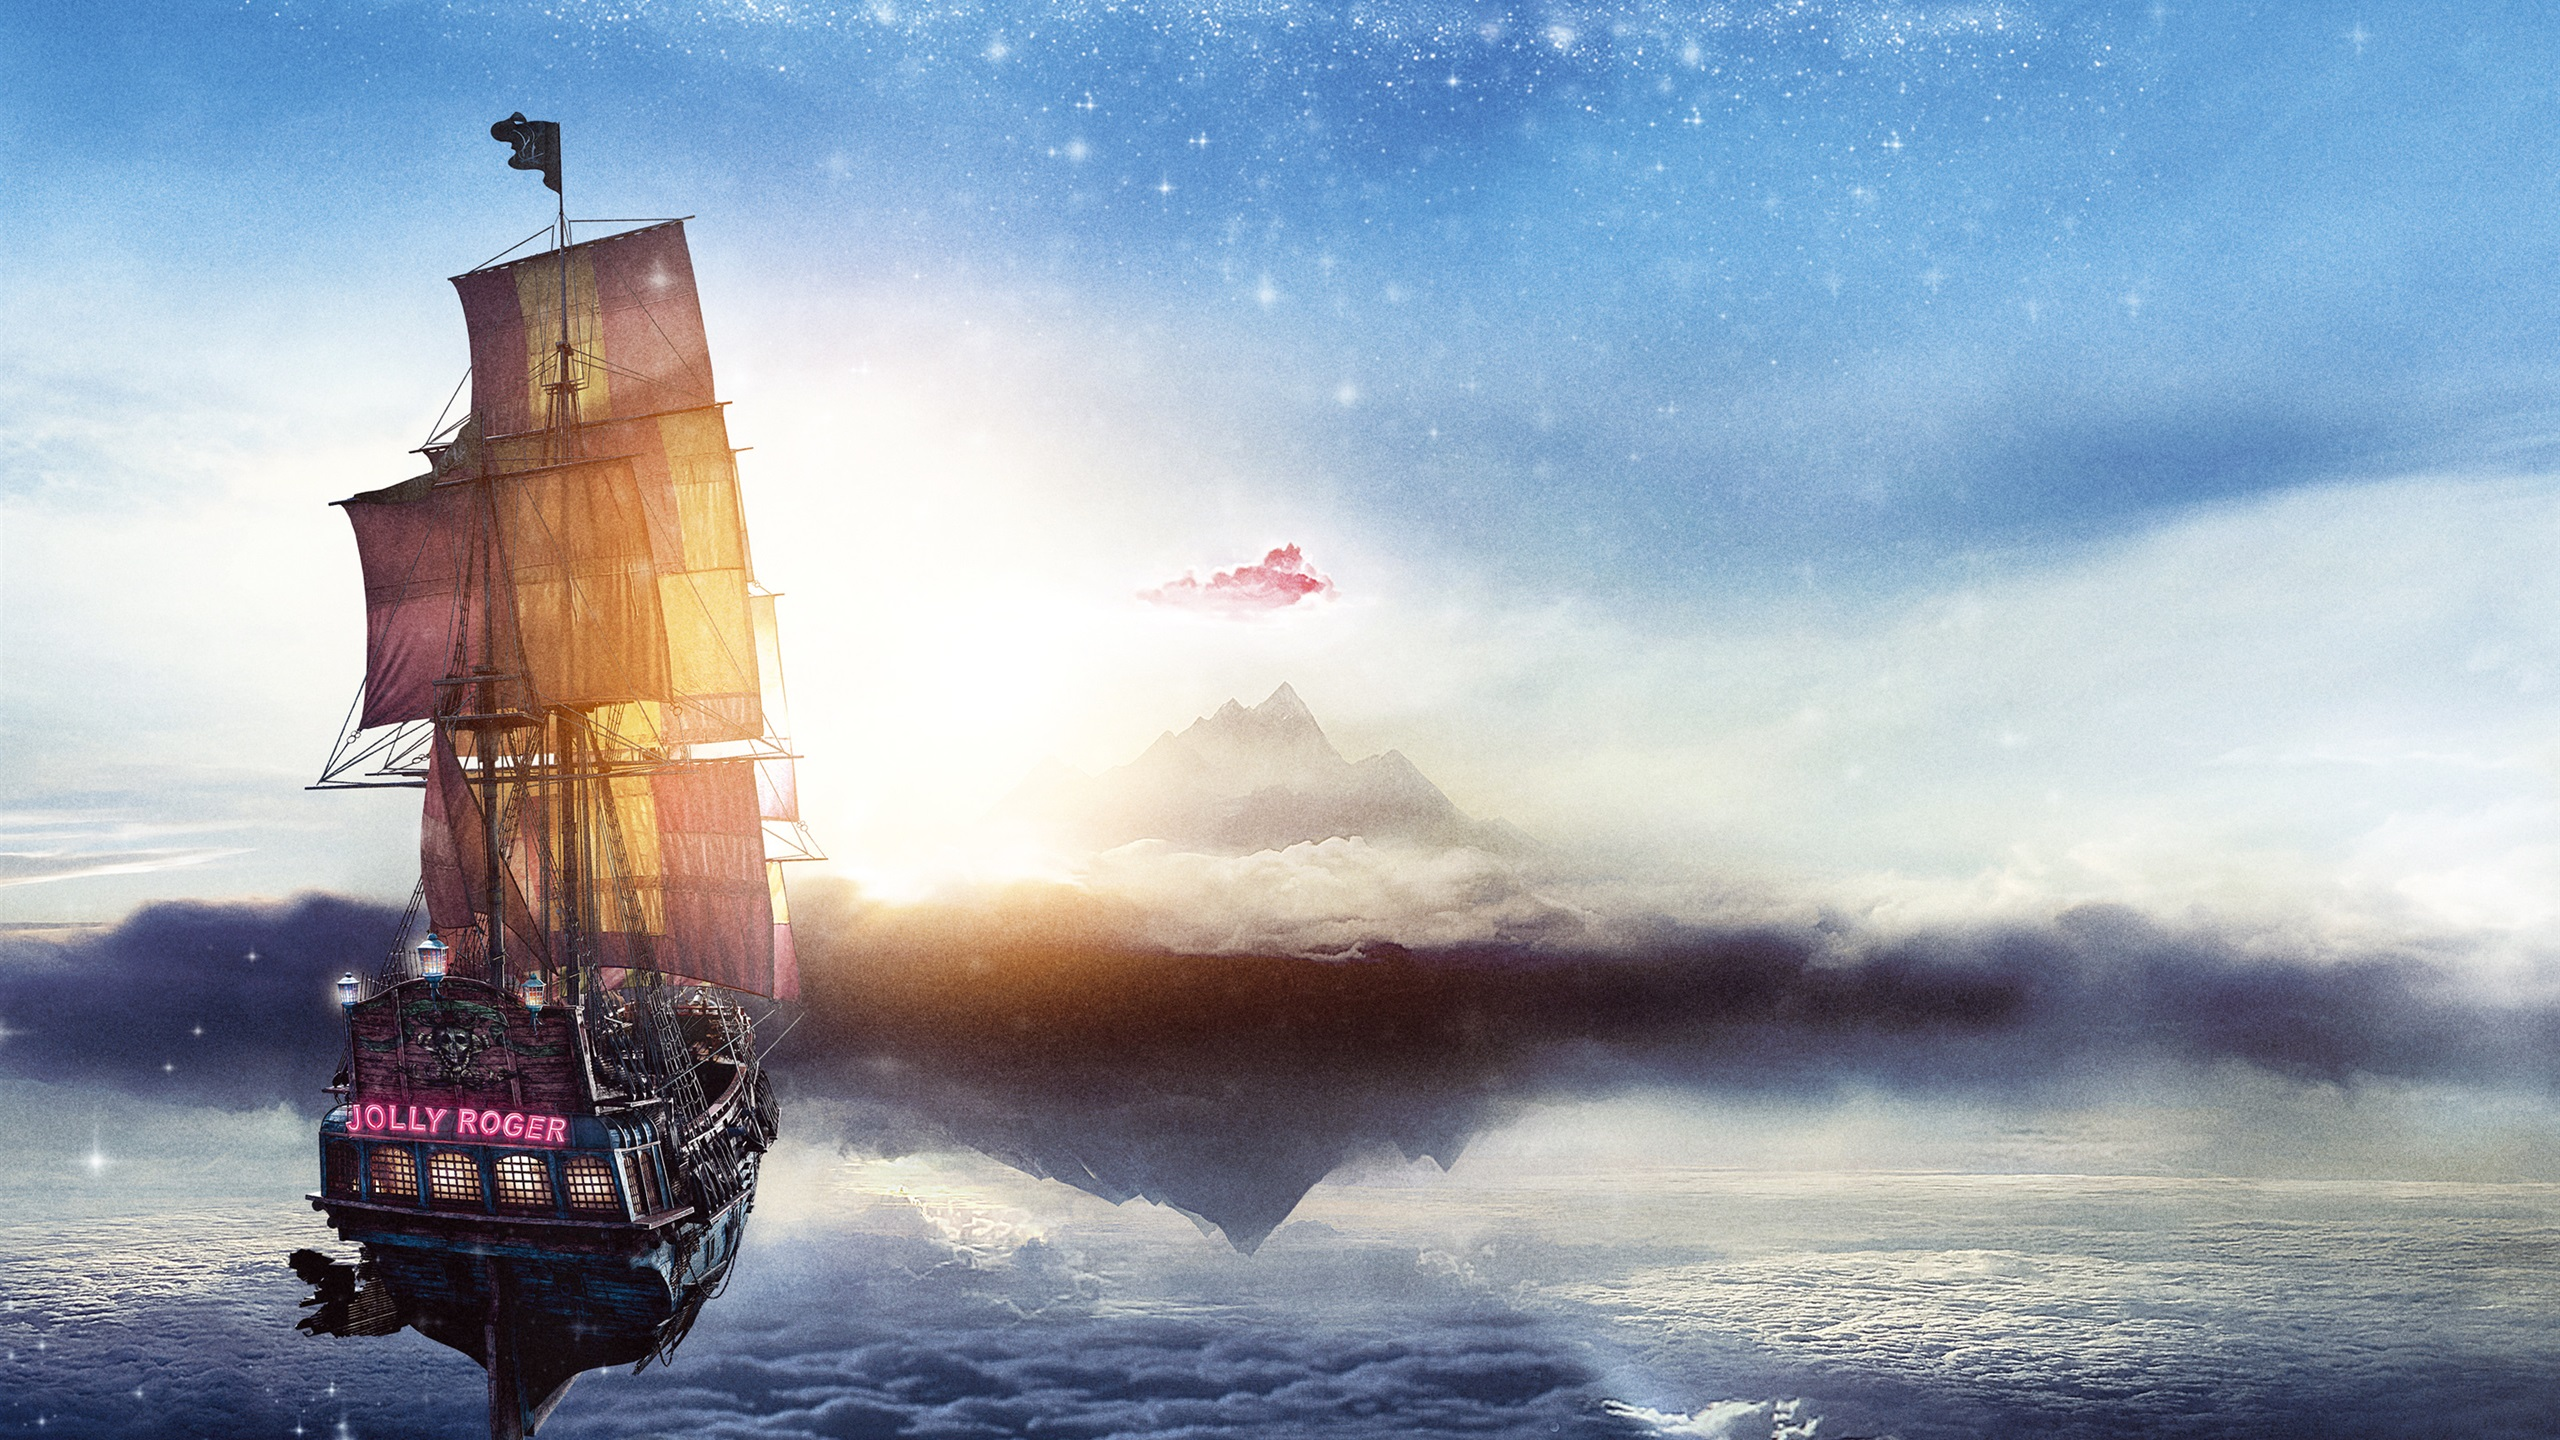 Peter Pan Journey To Neverland 750x1334 Iphone 8 7 6 6s